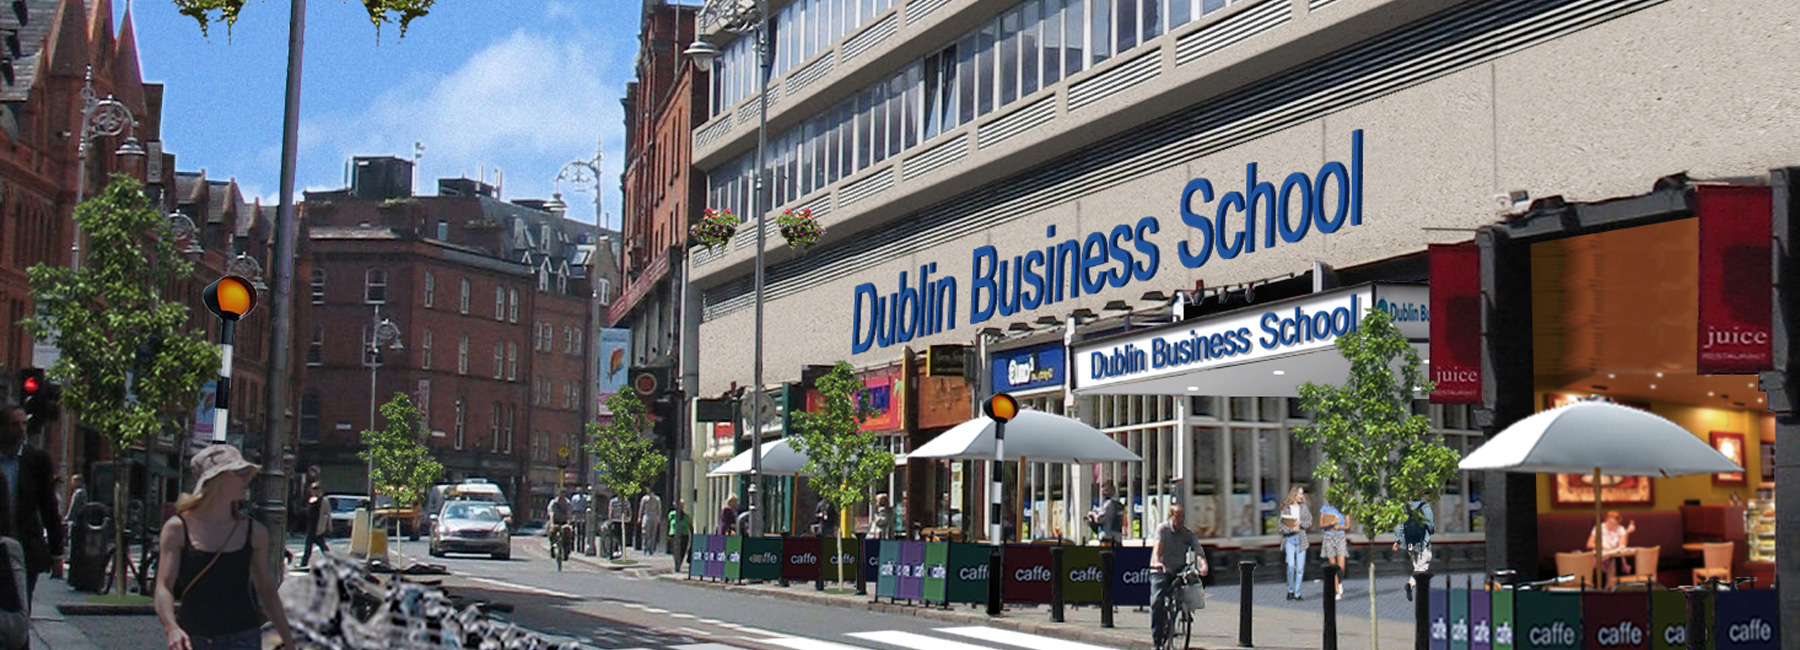 dublin-business-school - via academica